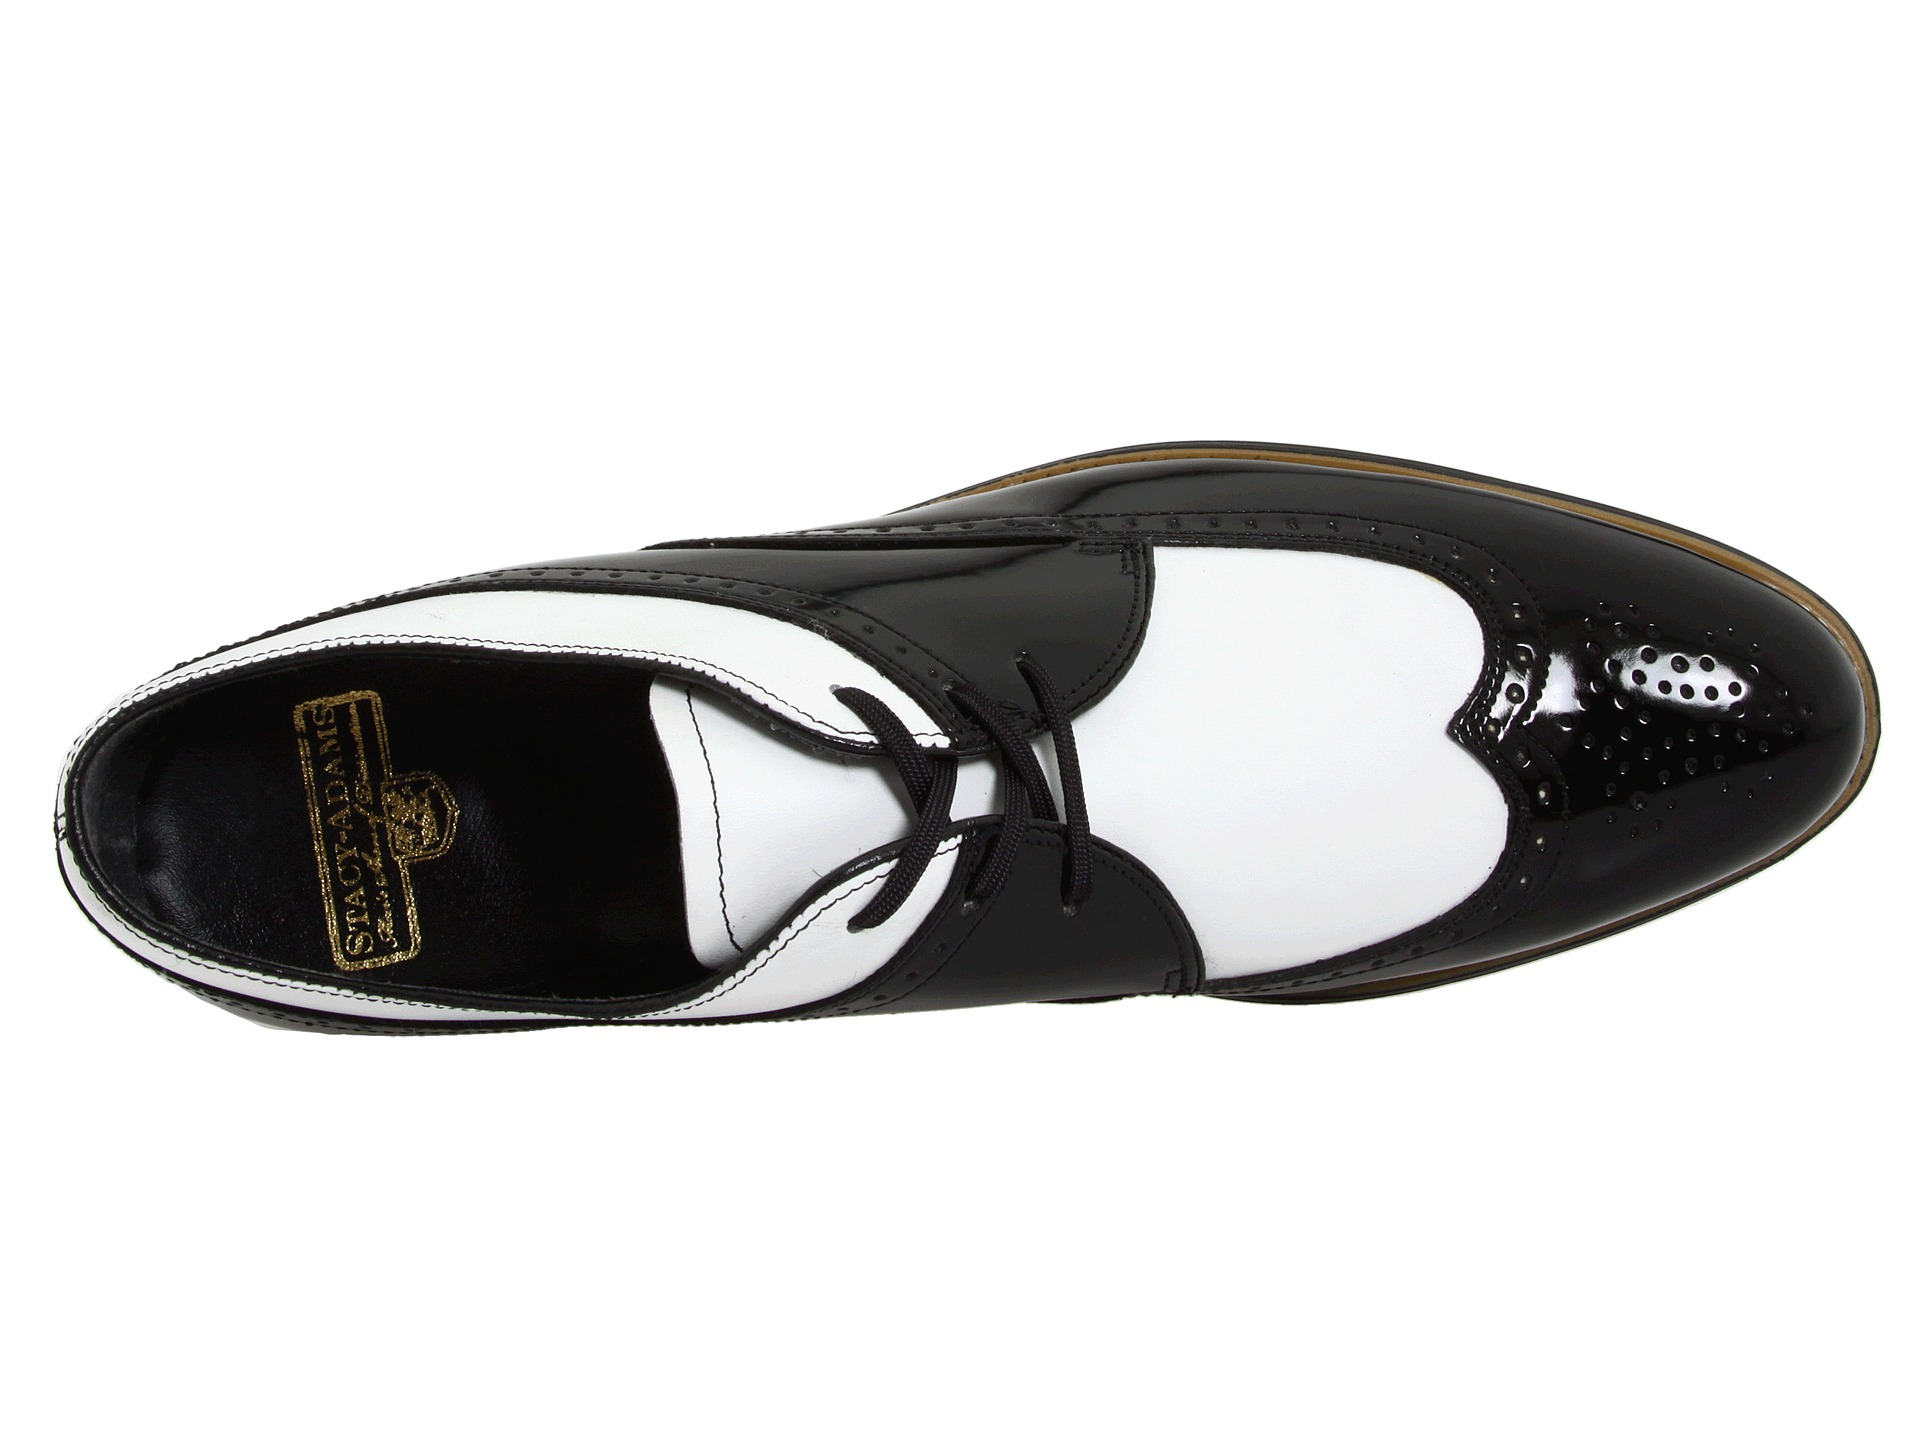 Vintage Stacy Adams Shoes